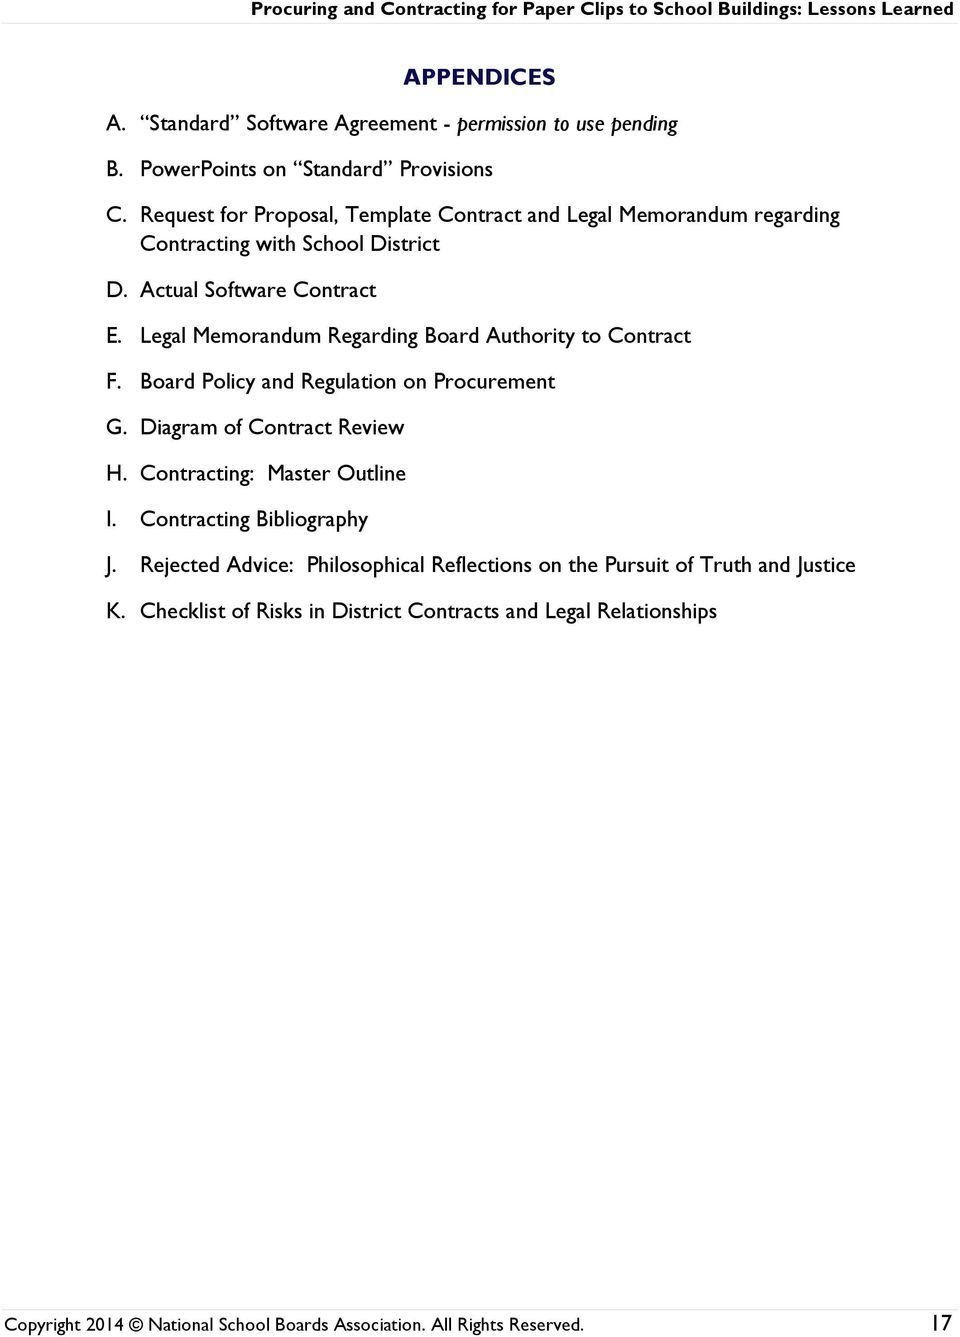 Legal Memorandum Regarding Board Authority to Contract F. Board Policy and Regulation on Procurement G. Diagram of Contract Review H. Contracting: Master Outline I.